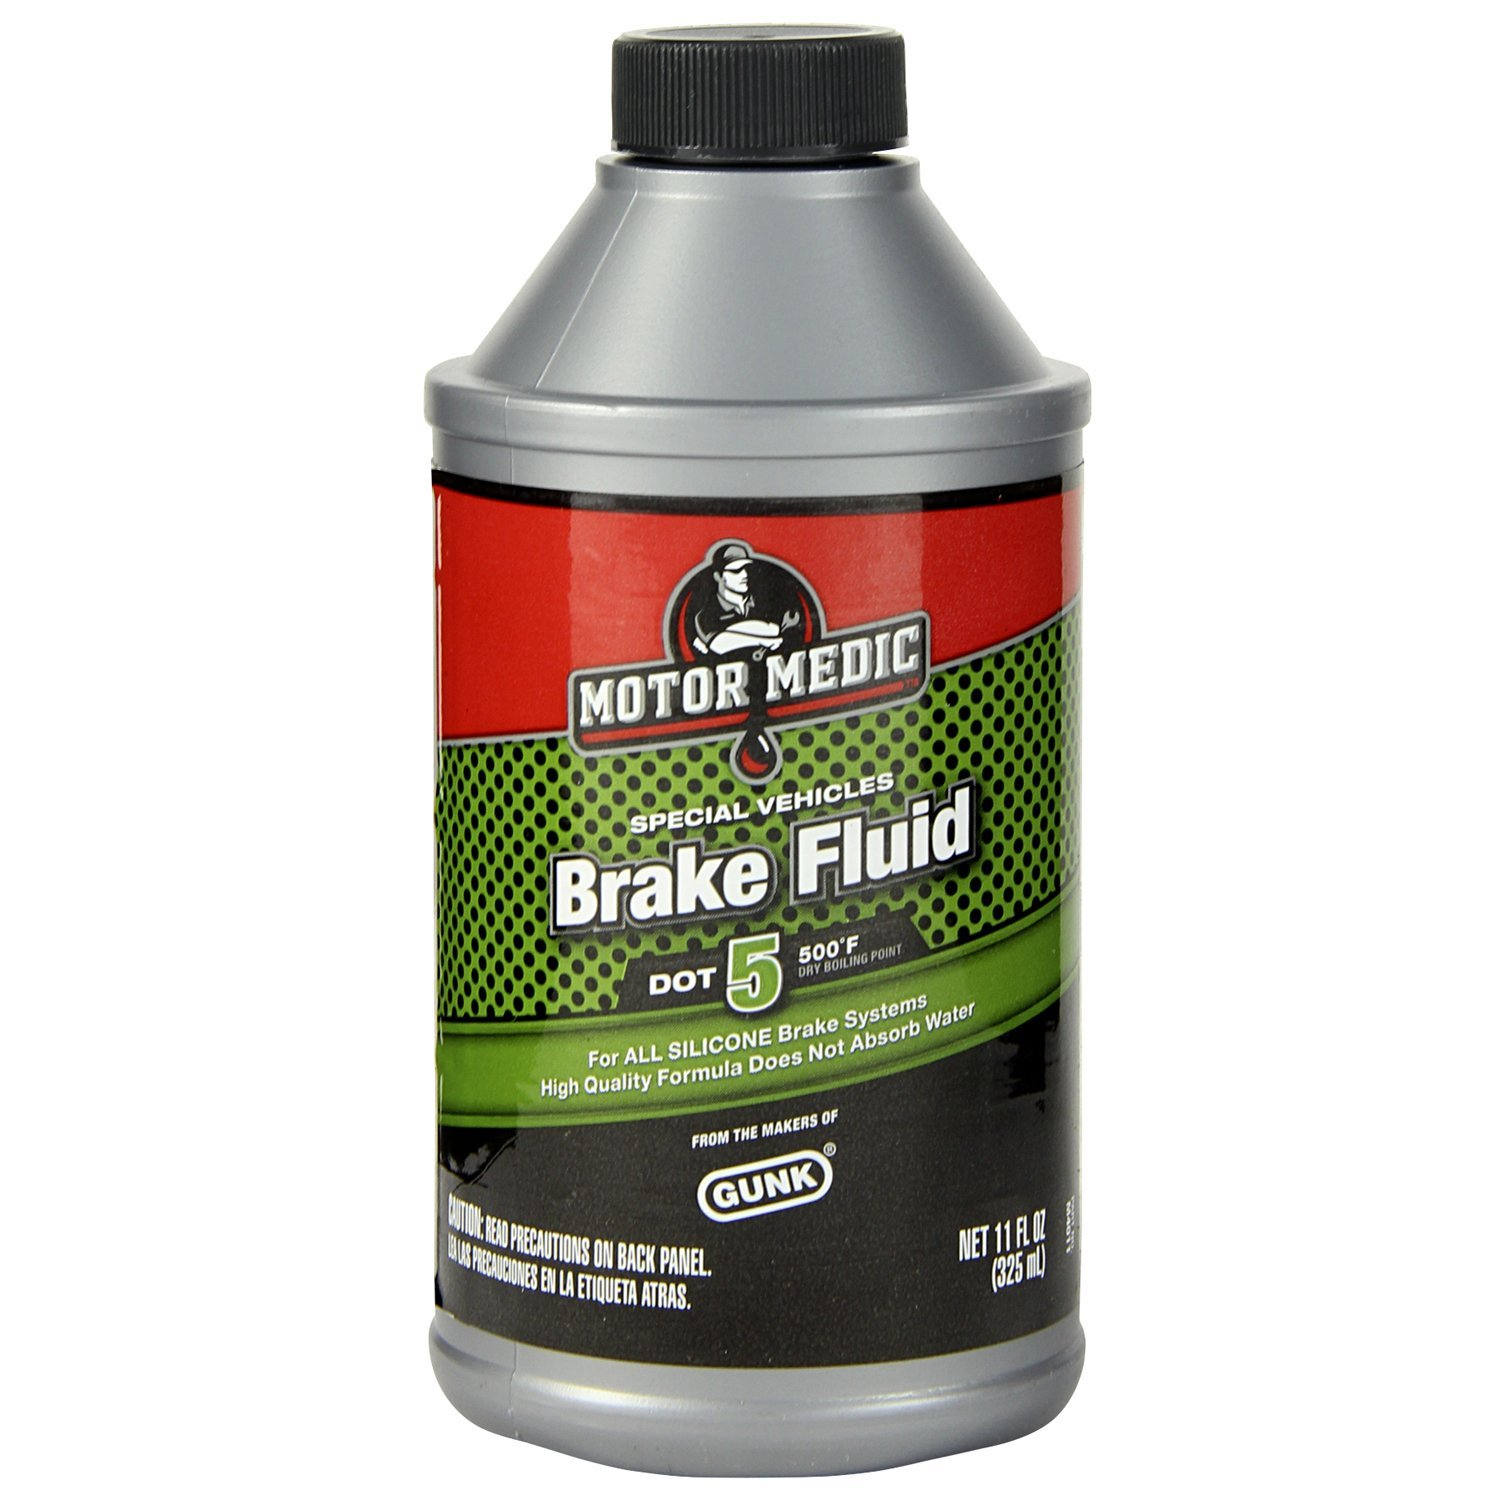 Motor Medic M4011/12-12PK DOT 5 Brake Fluid - 11 oz., (Case of 12) by MotorMedic